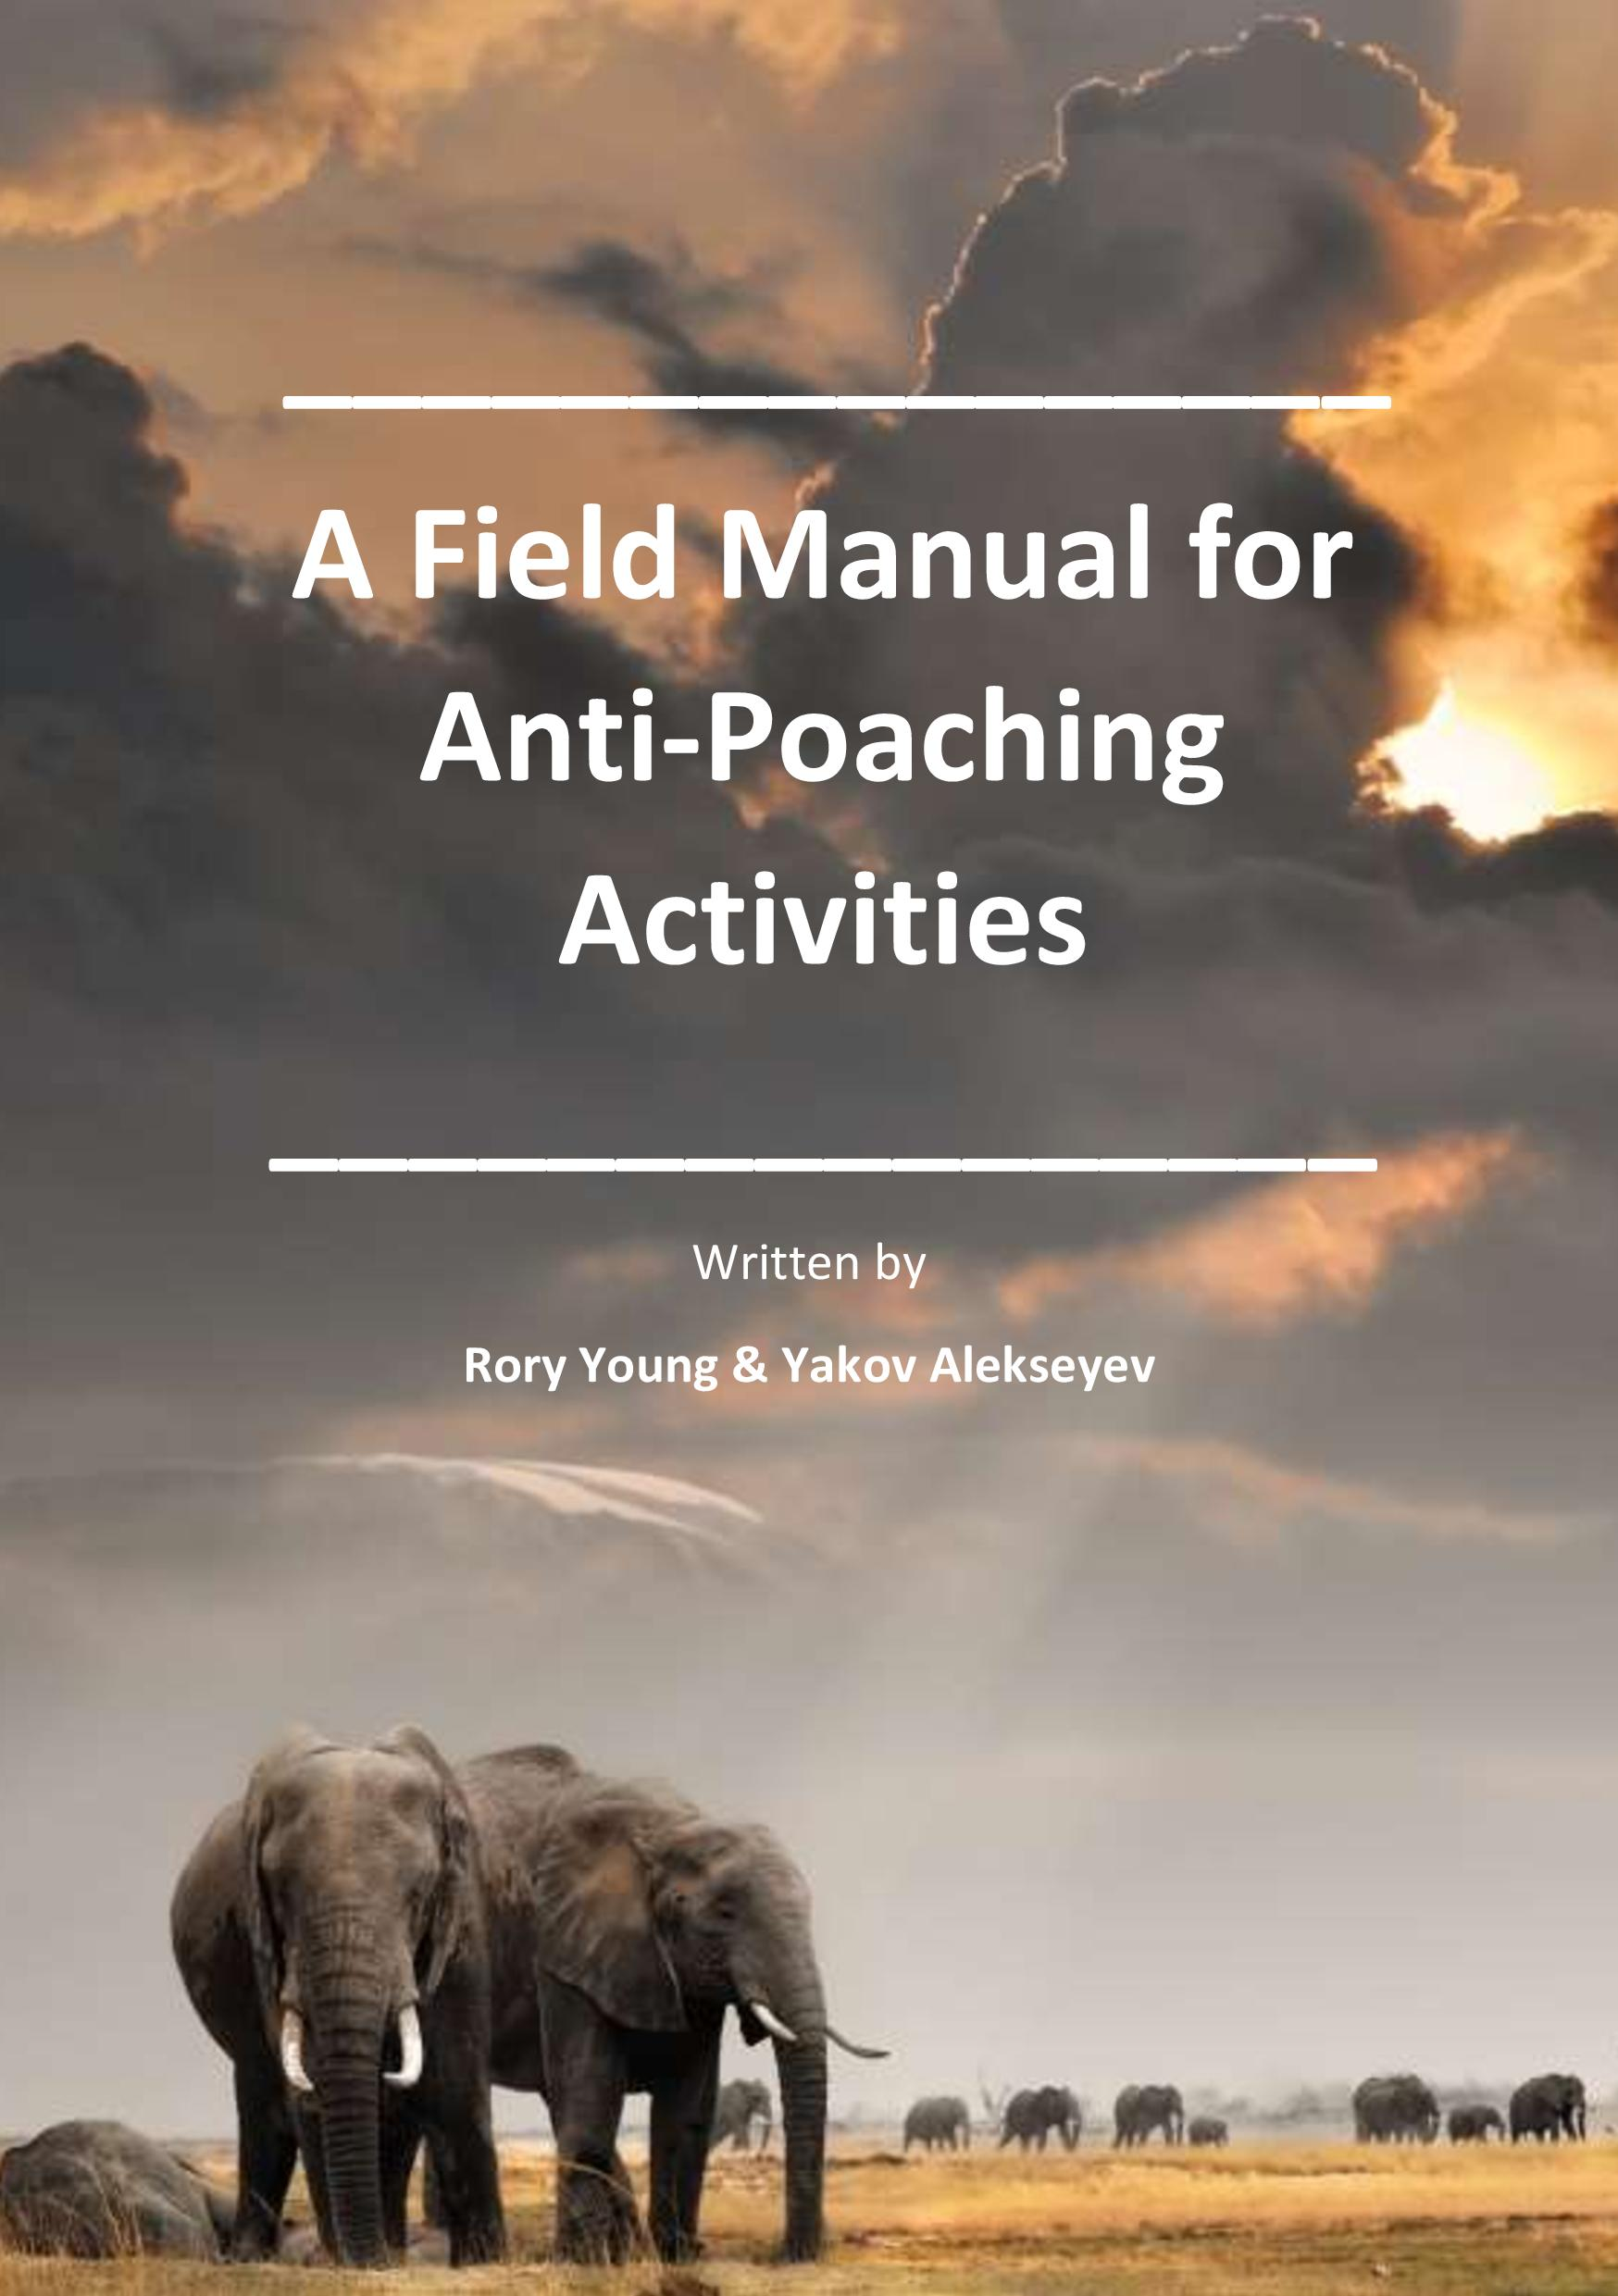 A Field Manual for Anti-Poaching Activities